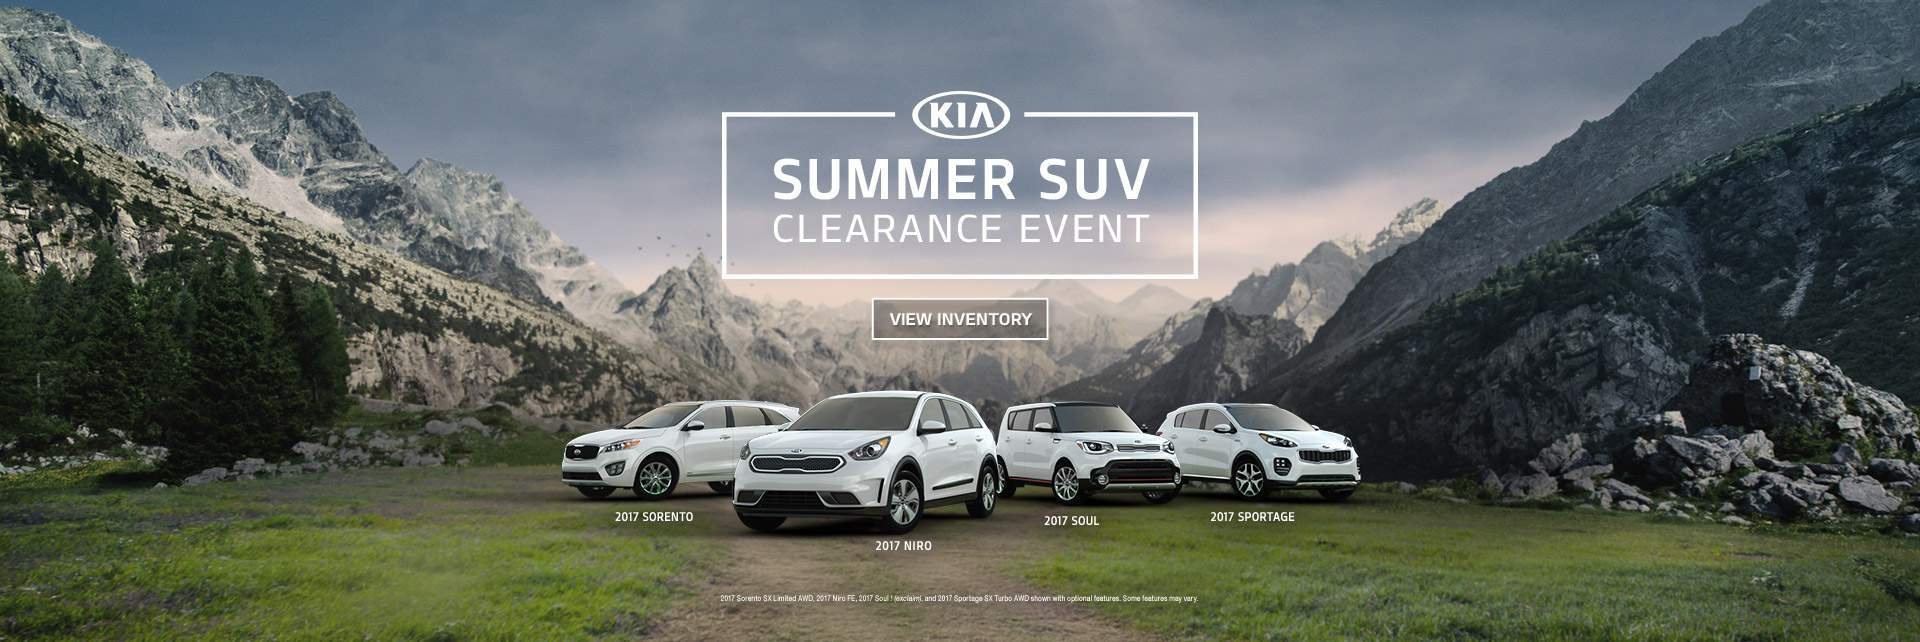 kia dealership washington mi used cars serra kia. Black Bedroom Furniture Sets. Home Design Ideas